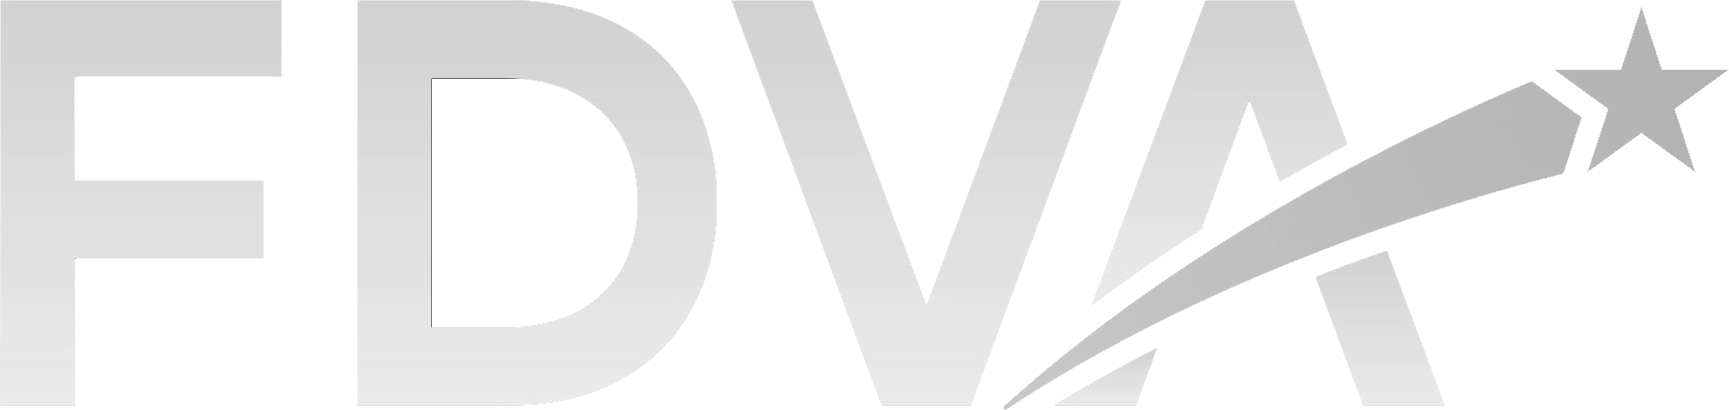 fdva-logo-with-one-line-website-name